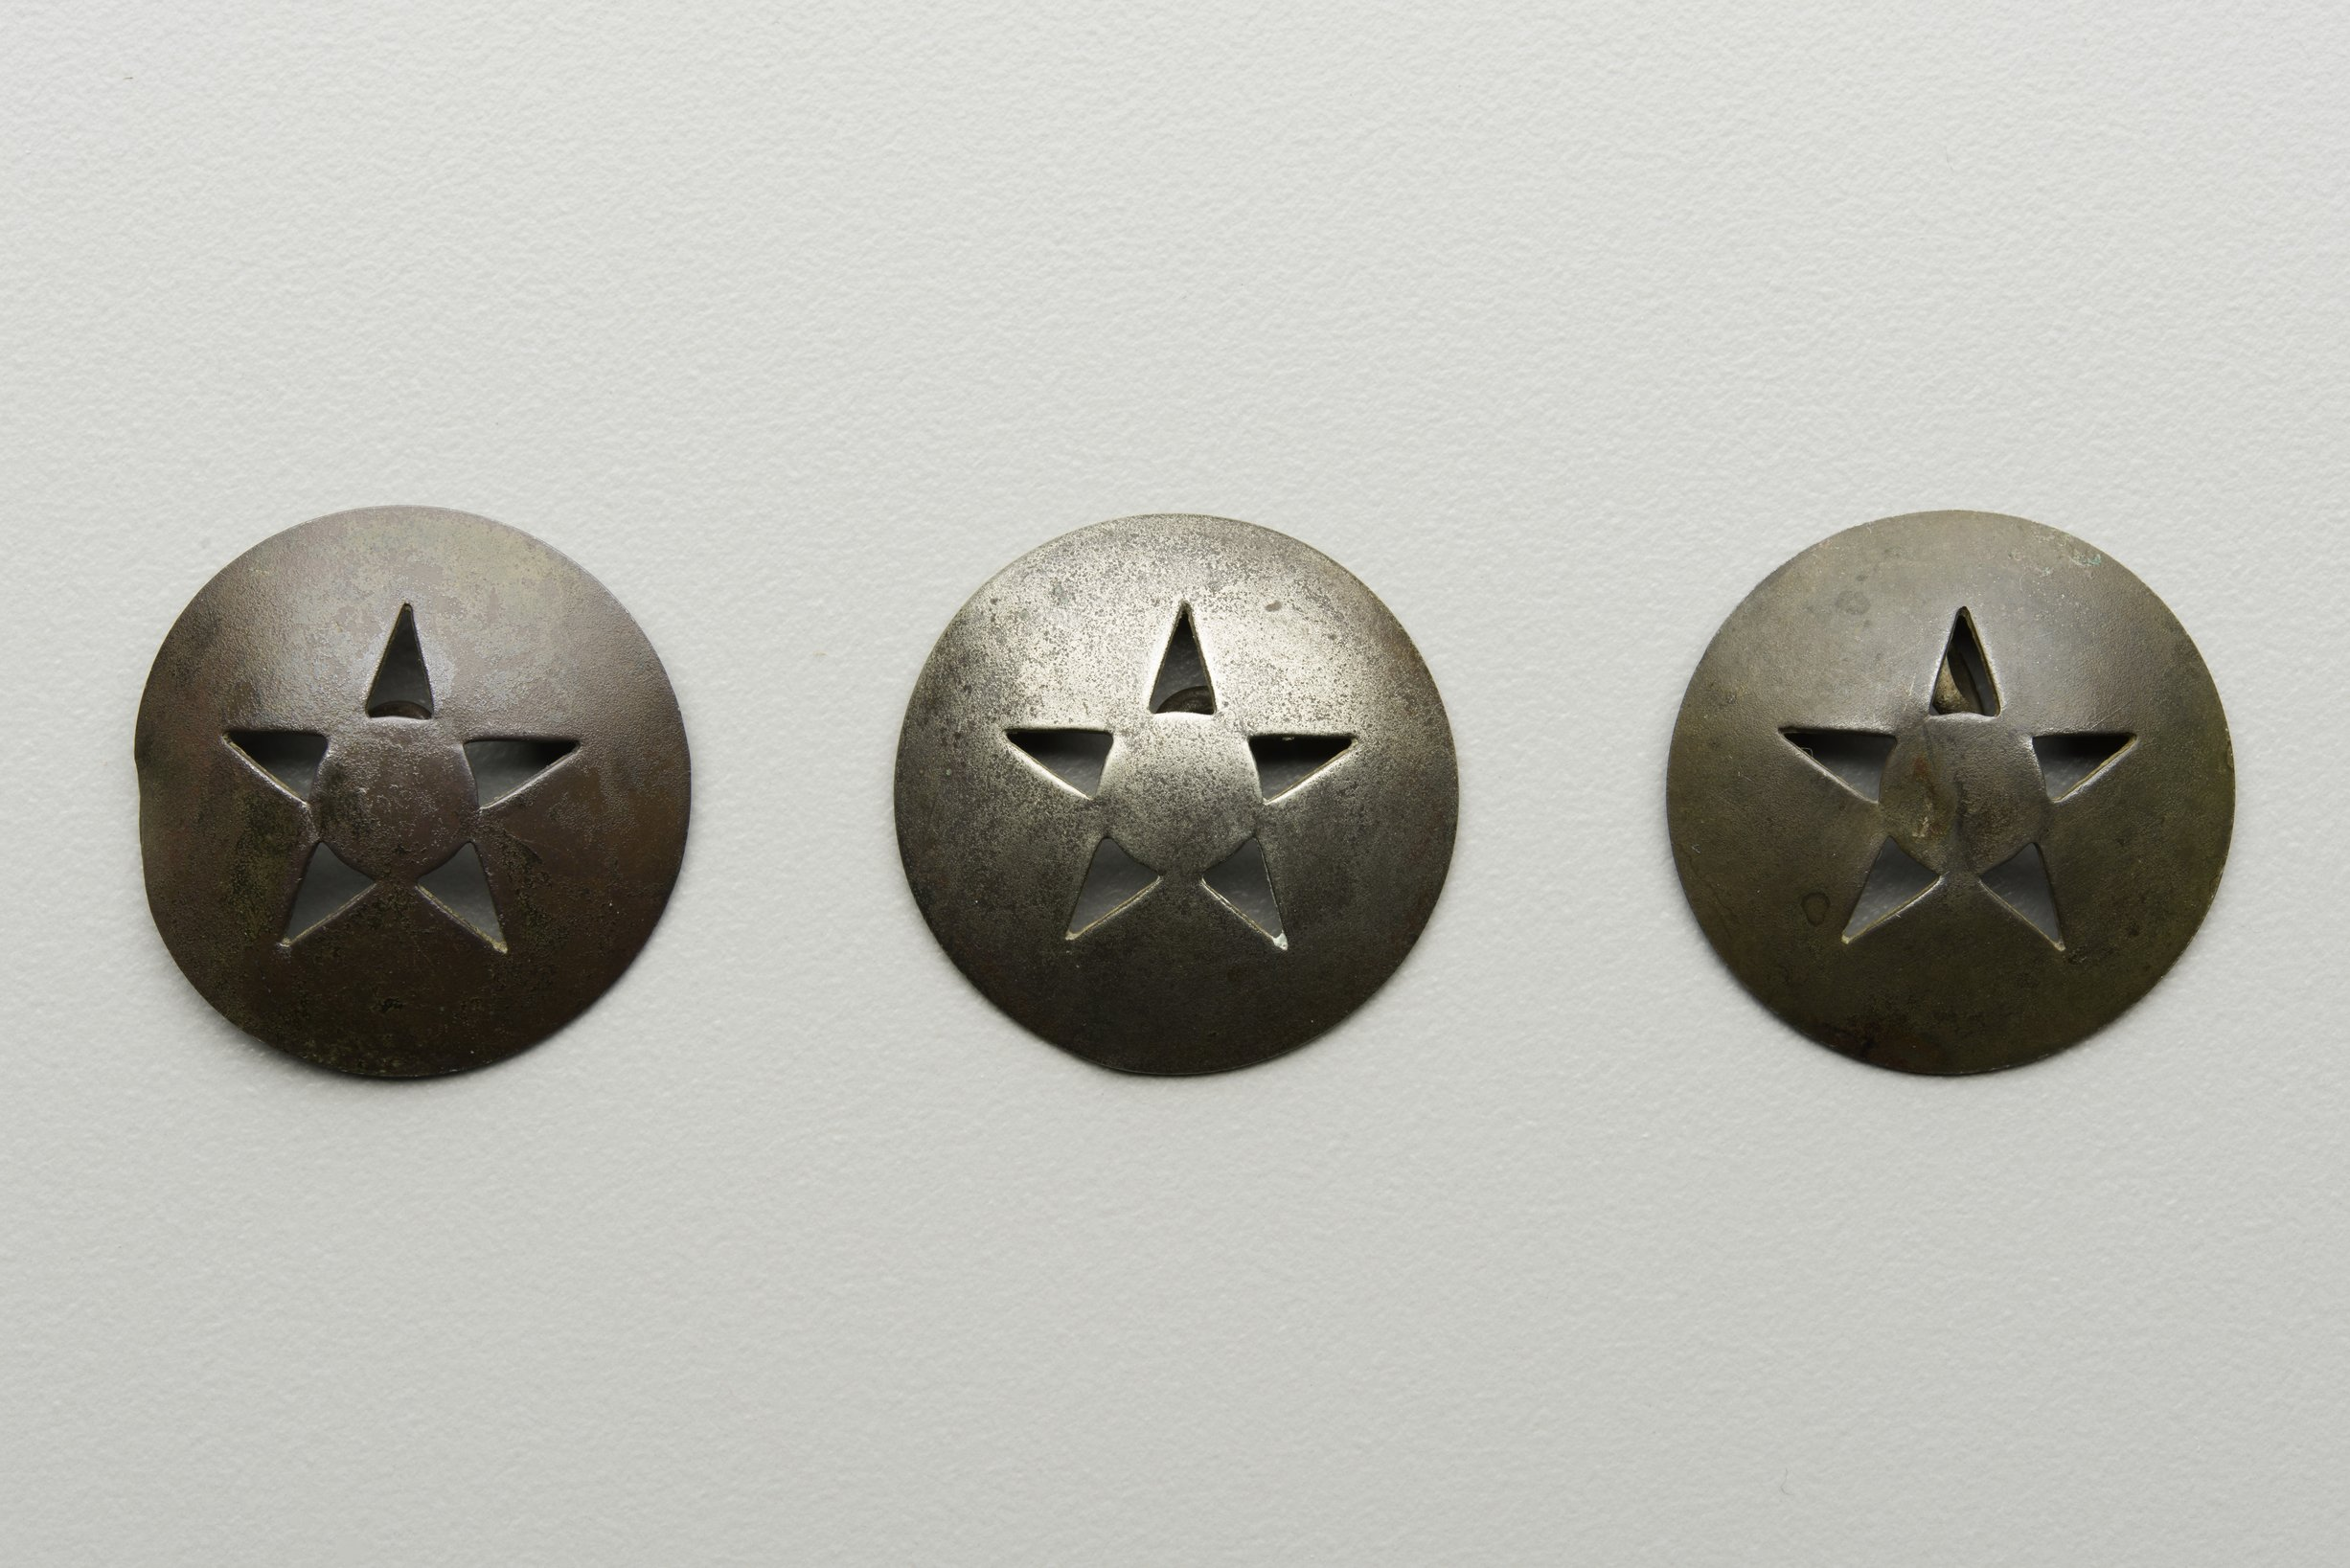 Conchos from the Canville Trading Post, 14NO396 - 1